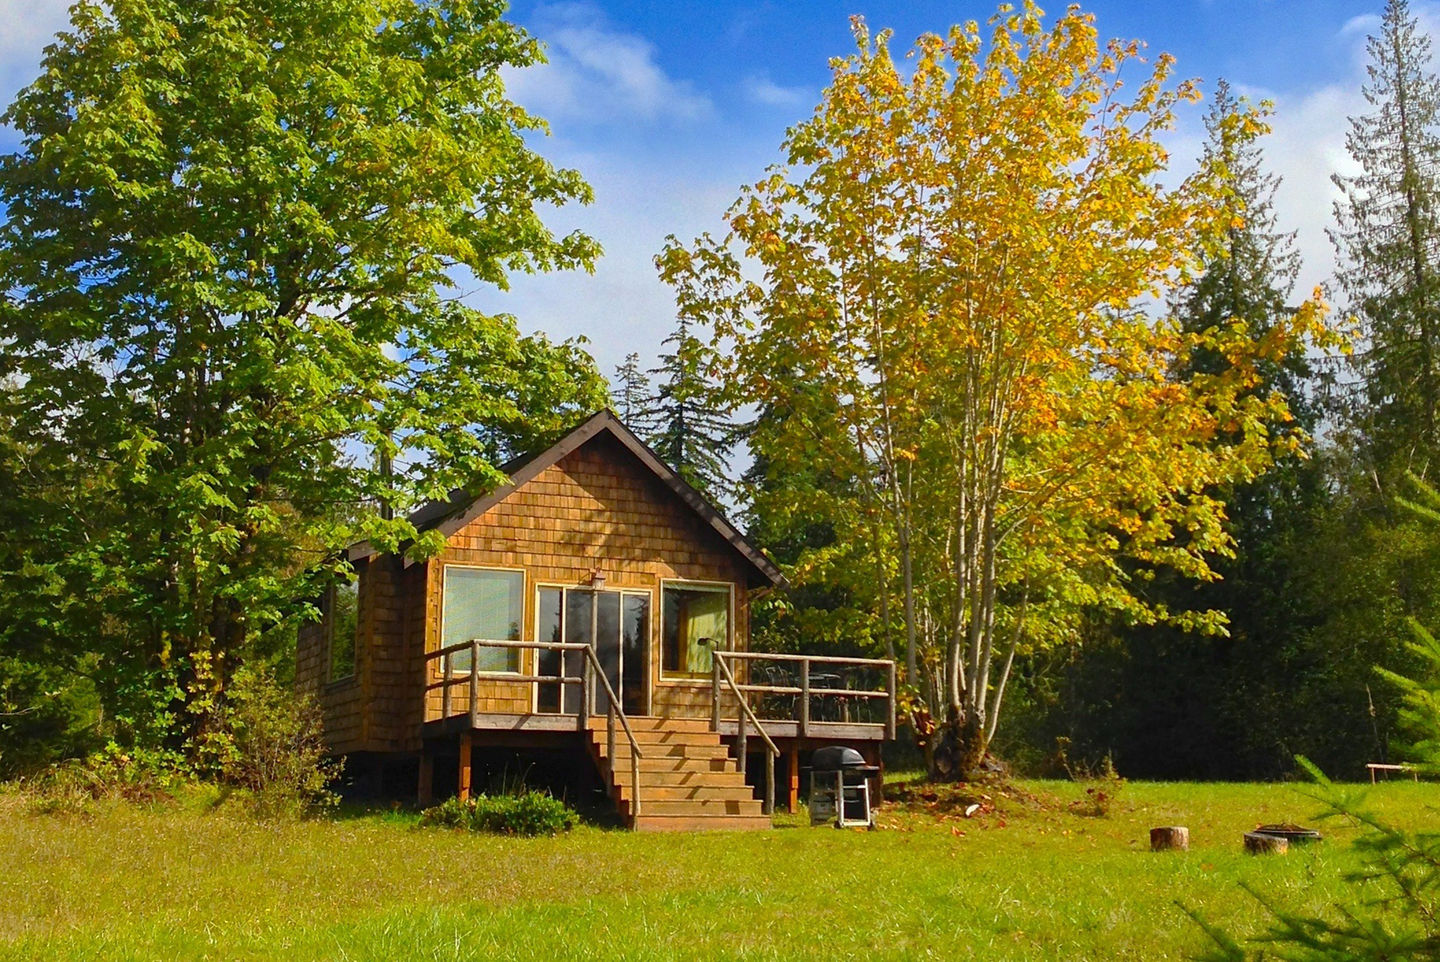 The Pond Cottage, an idyllic retreat surrounded by nature